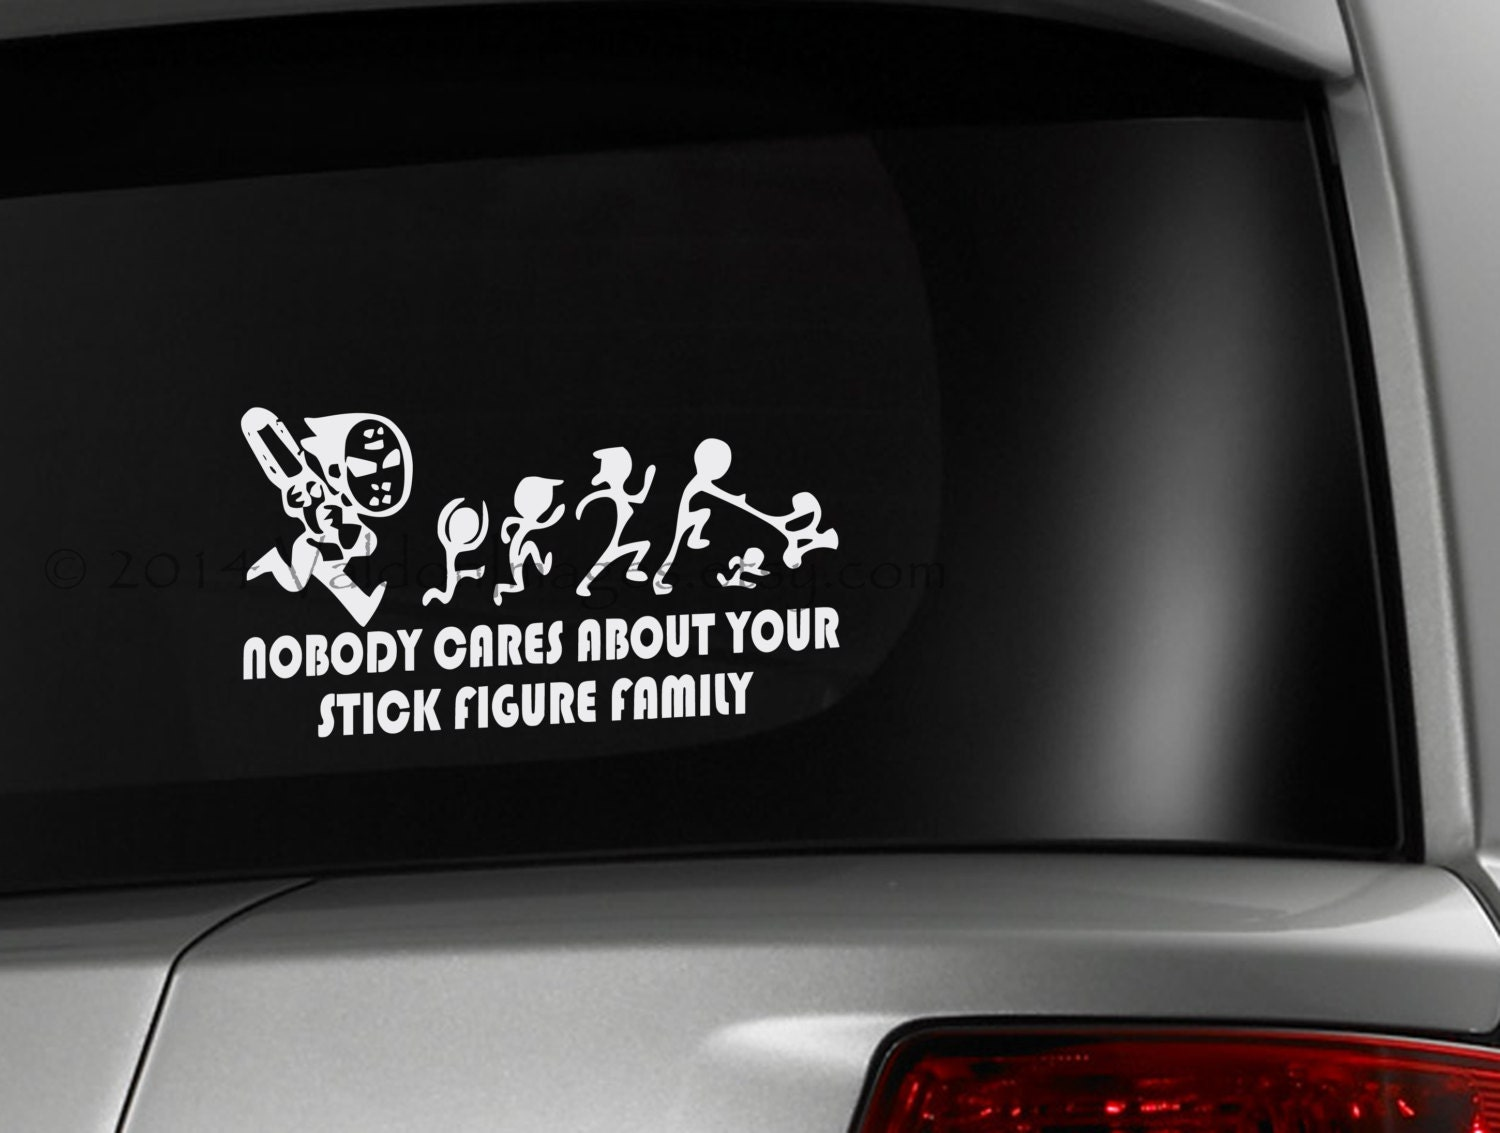 Design your car sticker - Chainsaw Maniac Chasing Stick Figure Family Car Decal Graphic Decal Vinyl Decal Decal